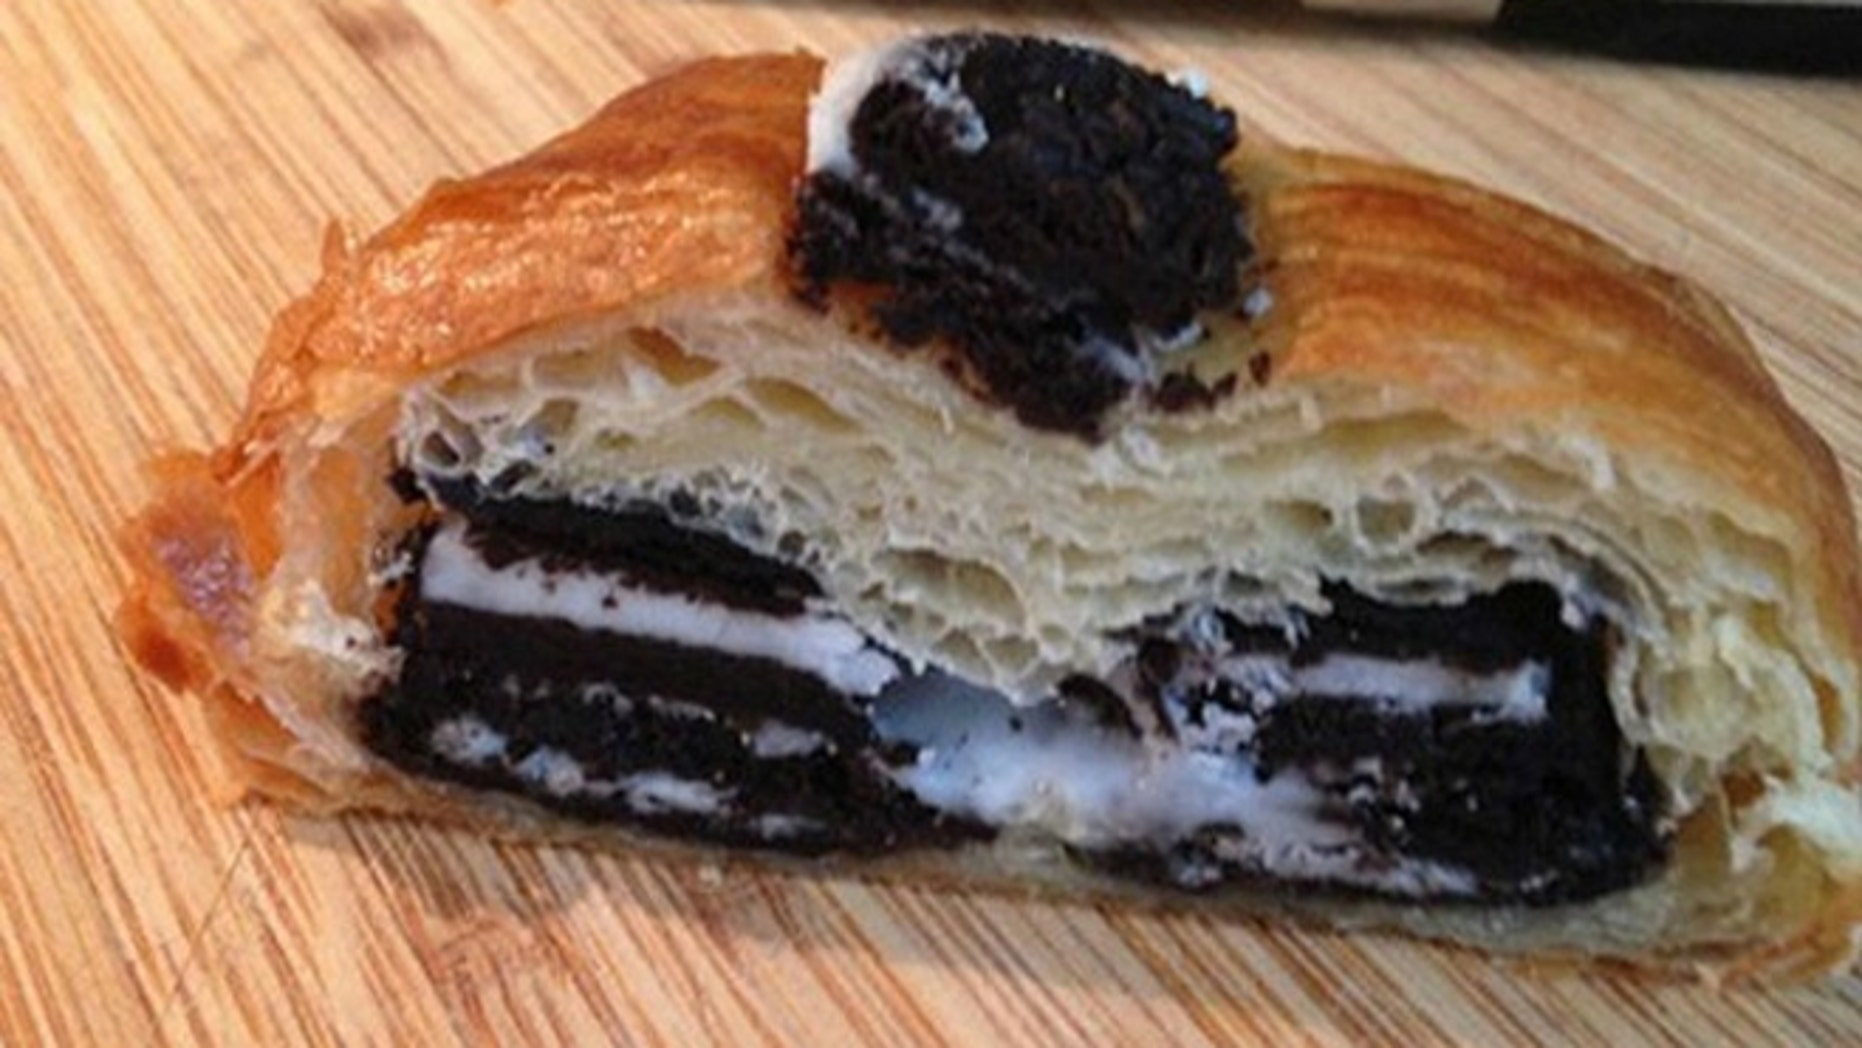 Crookies are the brainchild of Toronto pastry chef Olivier Jansen-Reynaud, owner of Clafouti Patisserie & Cafe,